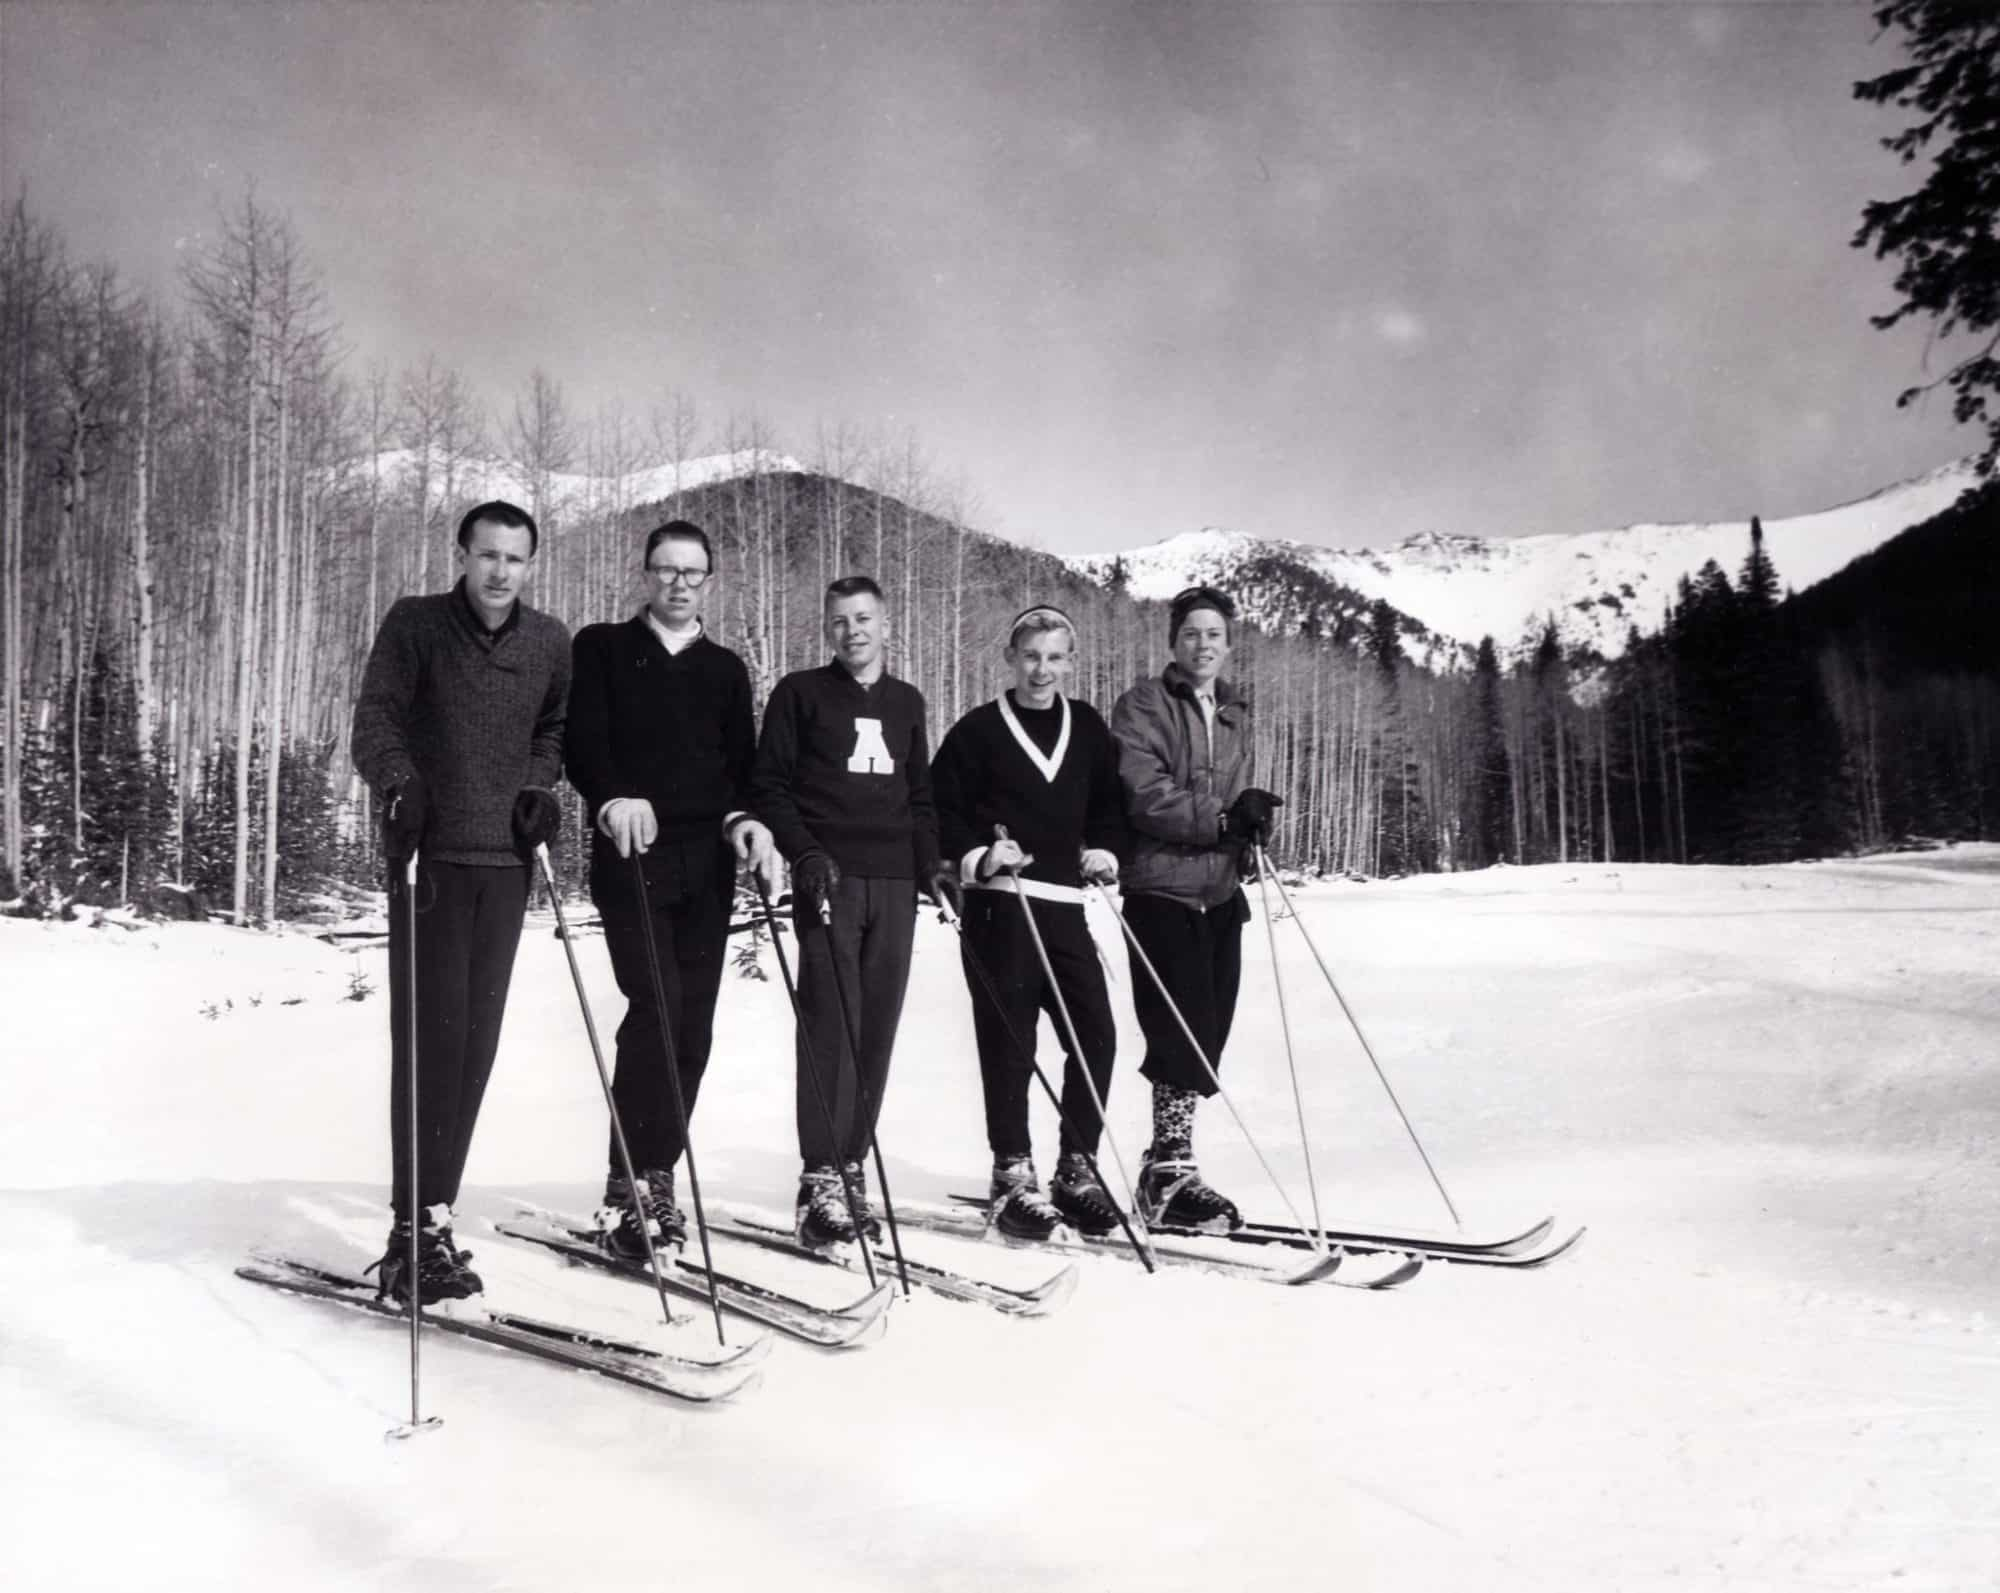 5 dudes skiing retro